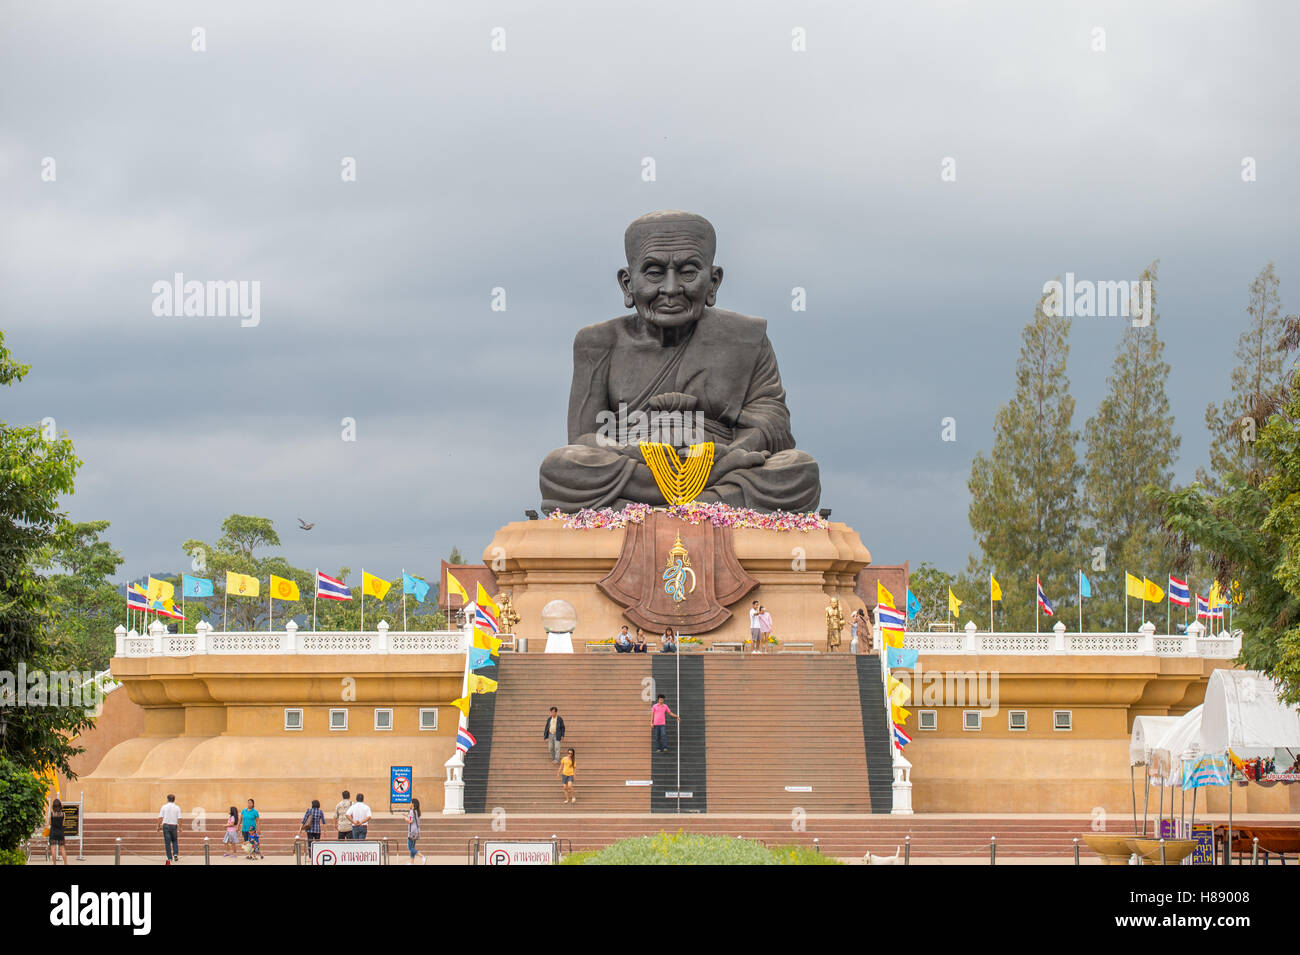 Sculpture of revered Buddhist monk Luang Pu Thuat at Wat Huay Mongkol in Hua Hin Thailand - Stock Image